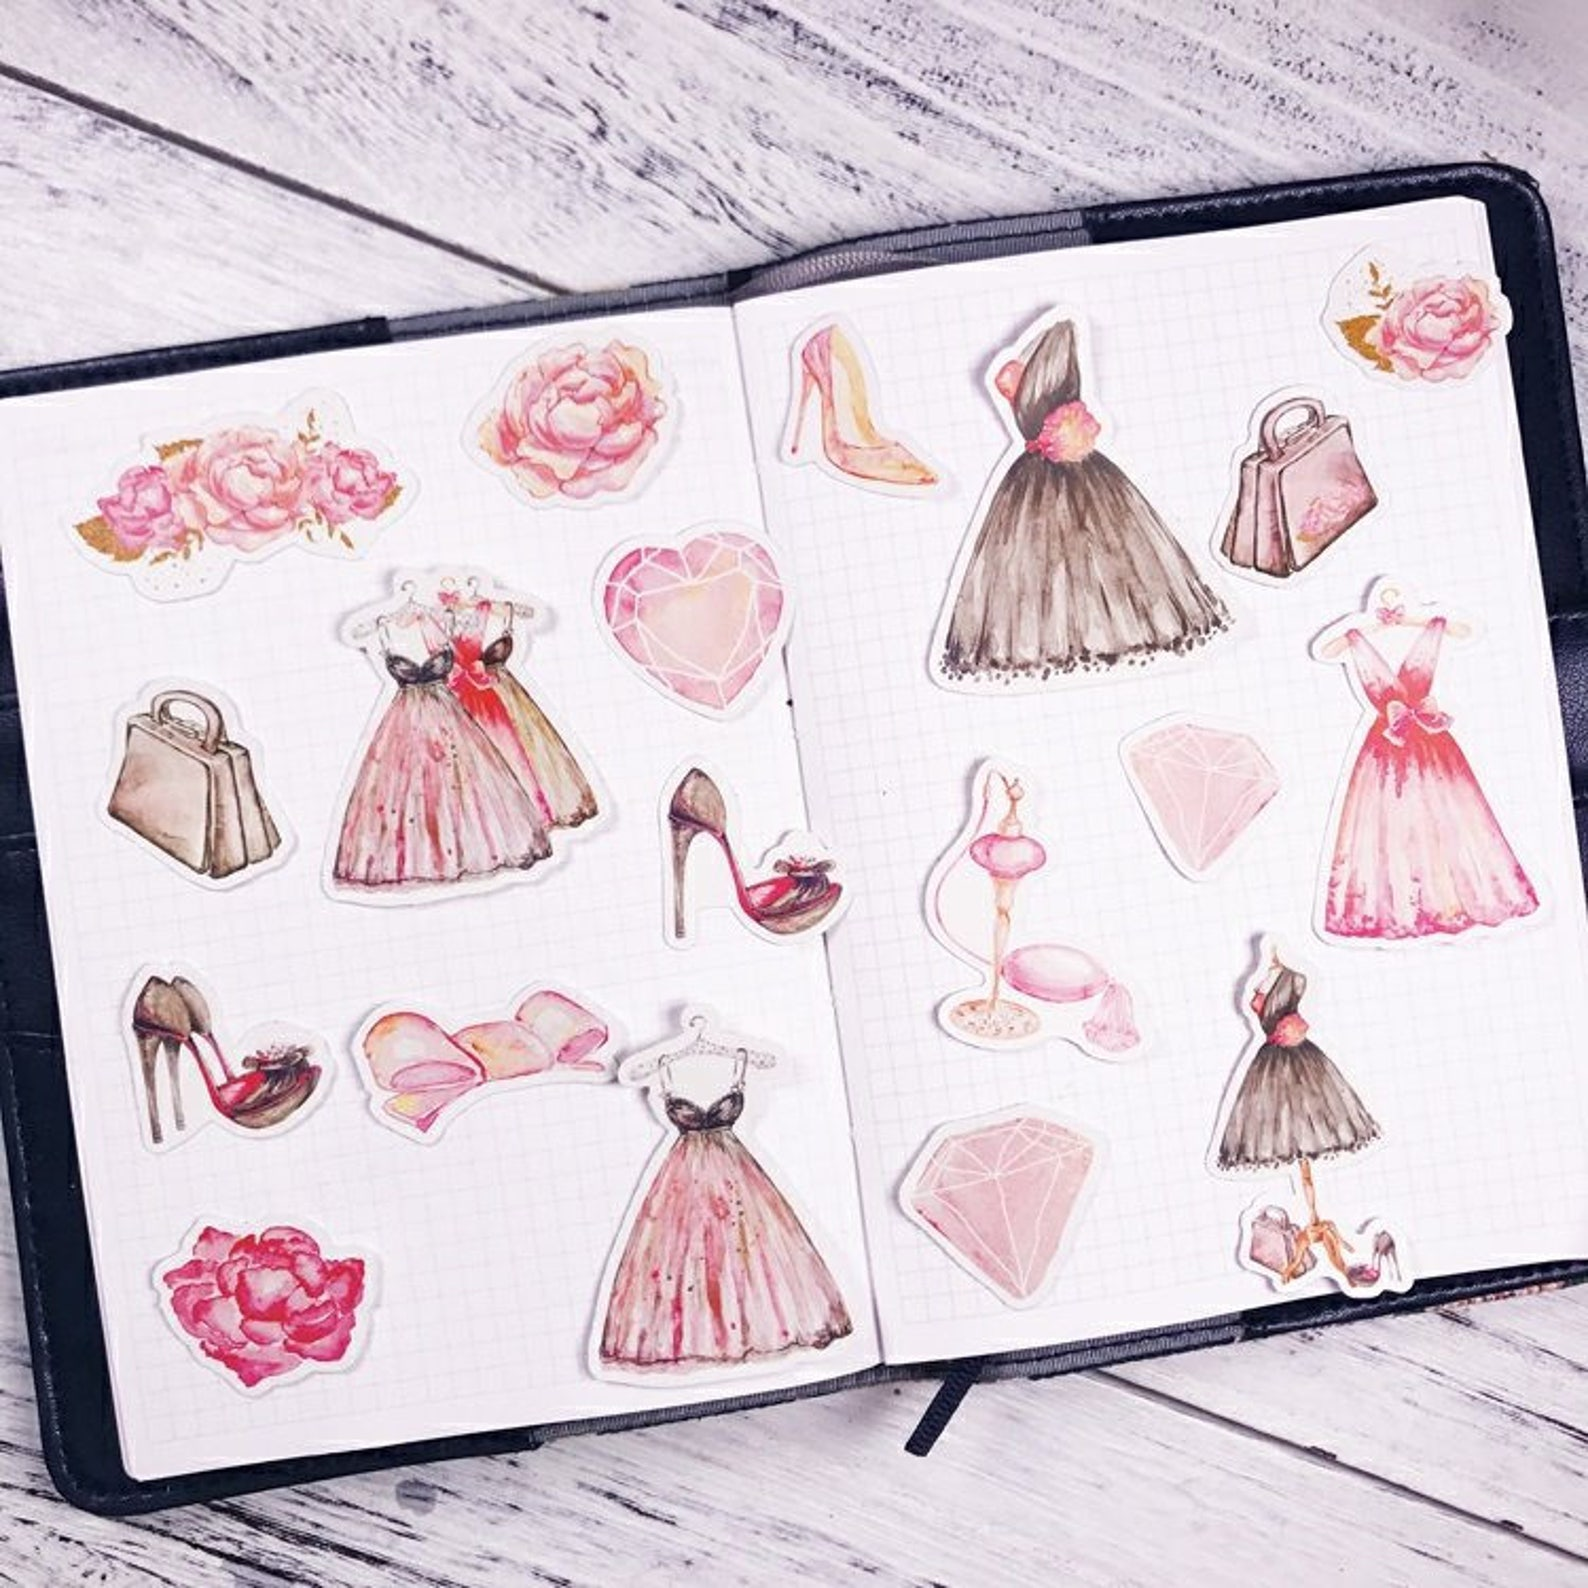 19 pcs, ballet sticker, ballerina sticker, swan sticker, shoe sticker, rose sticker, fairytale, swan lake sticker, swan lake, sk